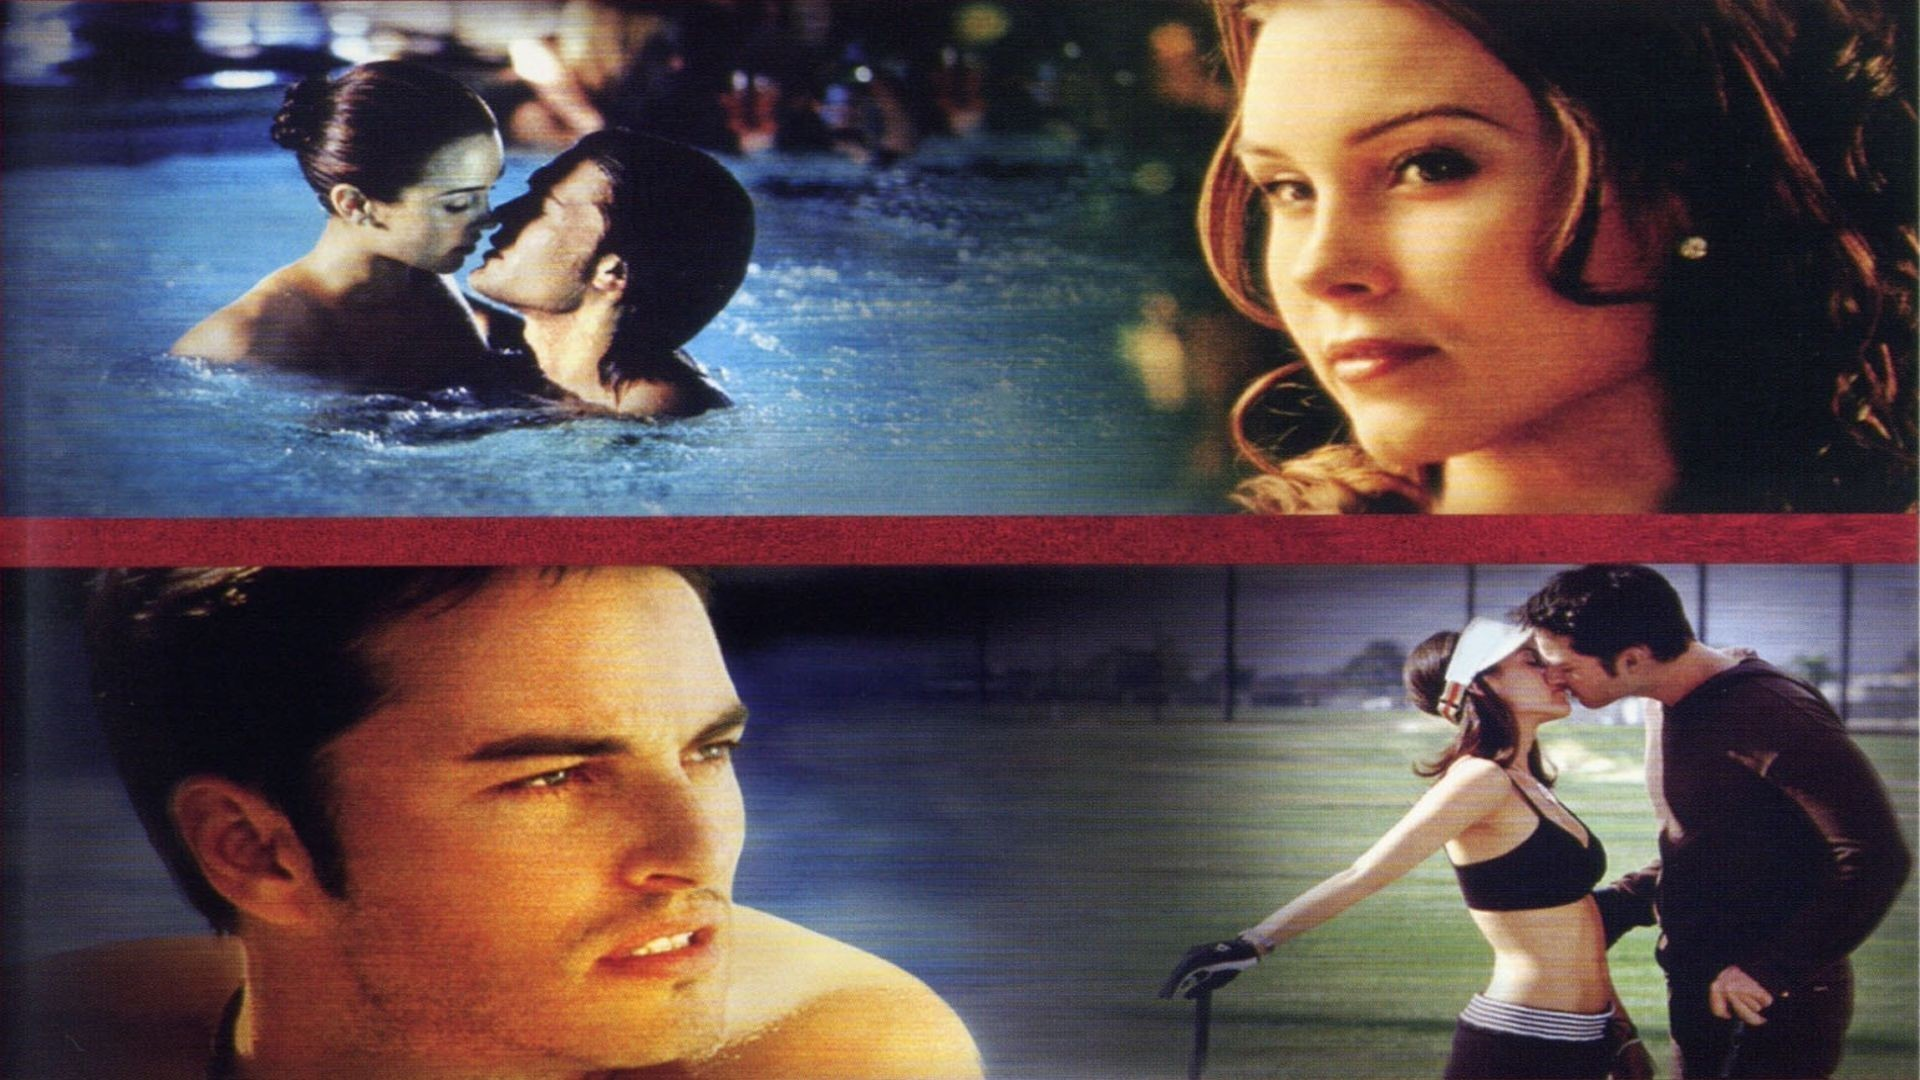 cruel intentions full movie - 1280×720